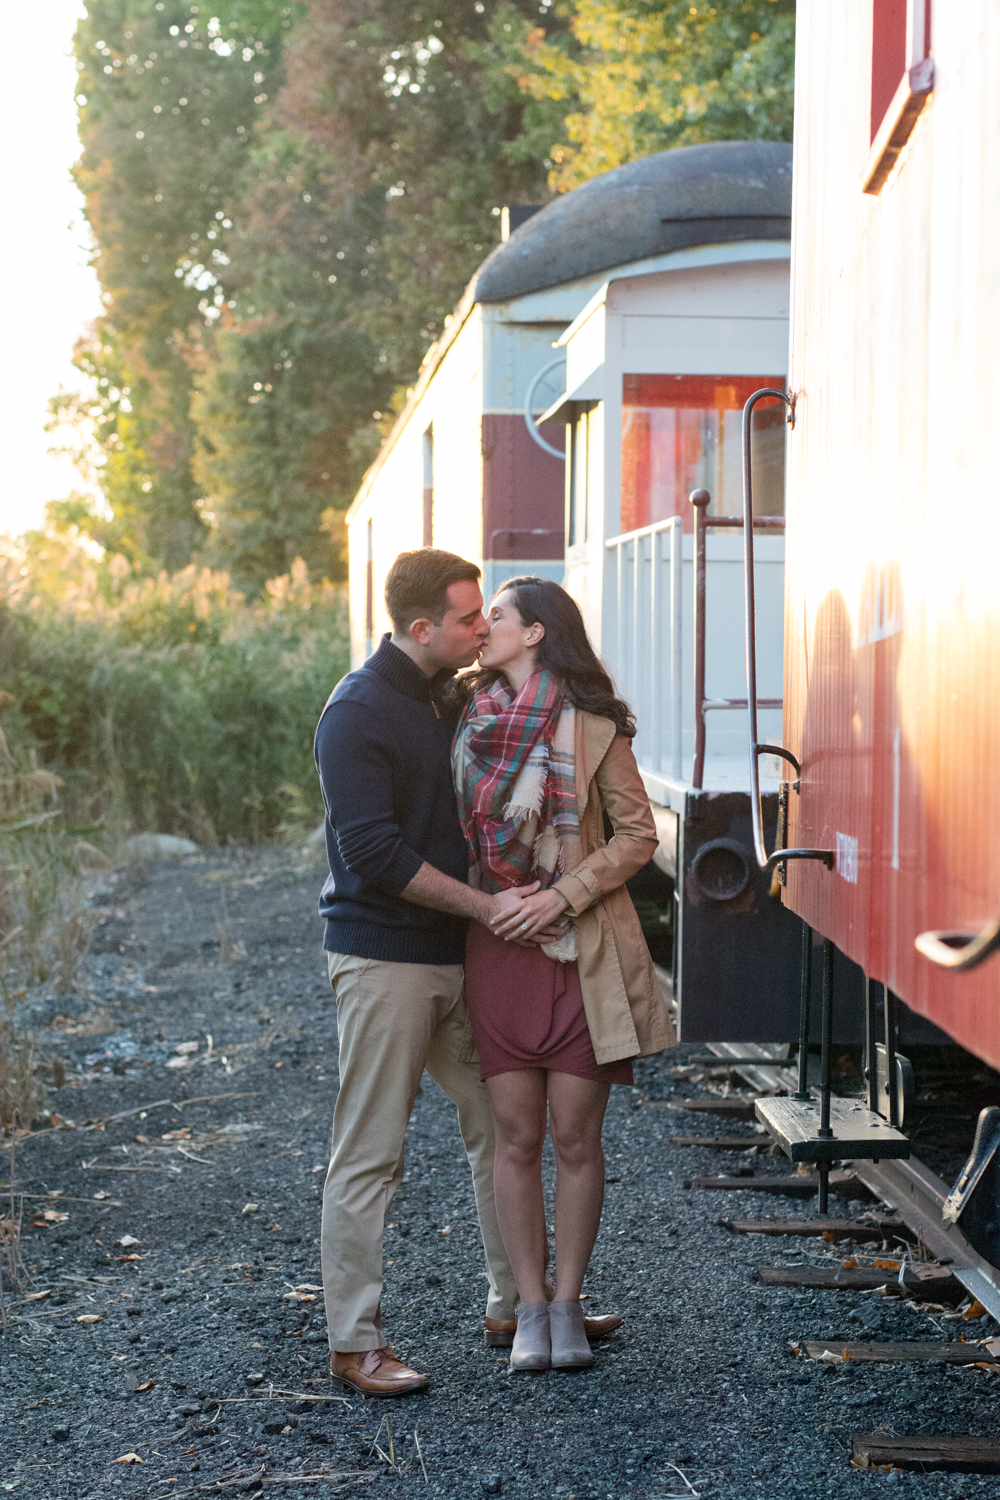 Michelle and Joe- Whippany Railway Musem 1950s Engagement - New Jersey -Olivia Christina Photography-124.jpg